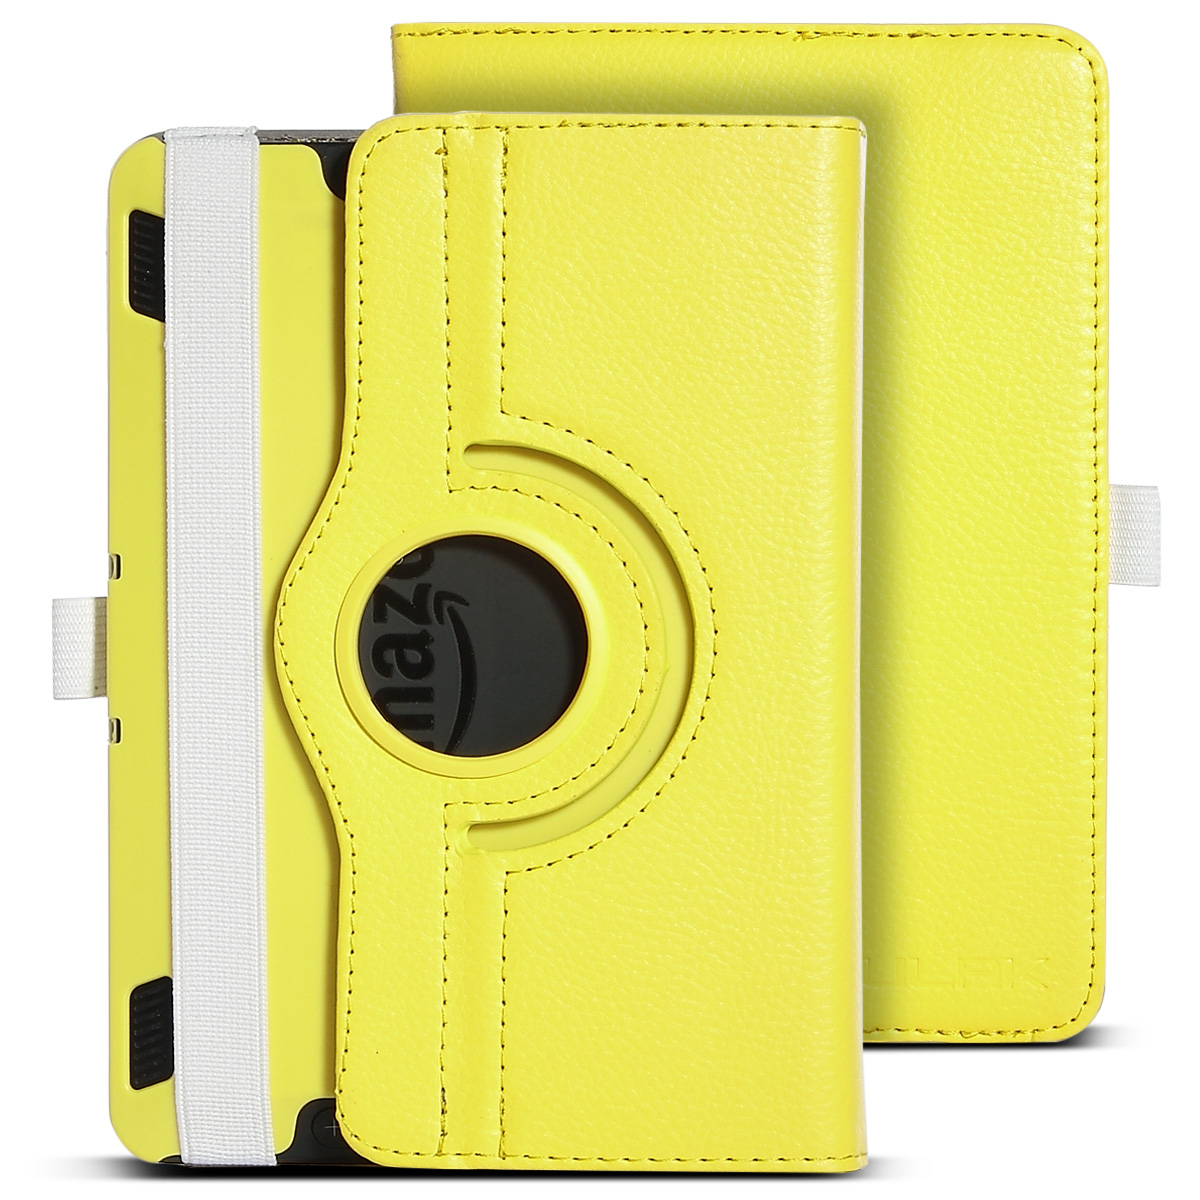 ULAK PU Leather 360 Degree Rotating Stand Case Cover for Amazon Kindle Fire HDX 7 Inch 2013 Release with Auto Sleep/Wake Feature, Grey